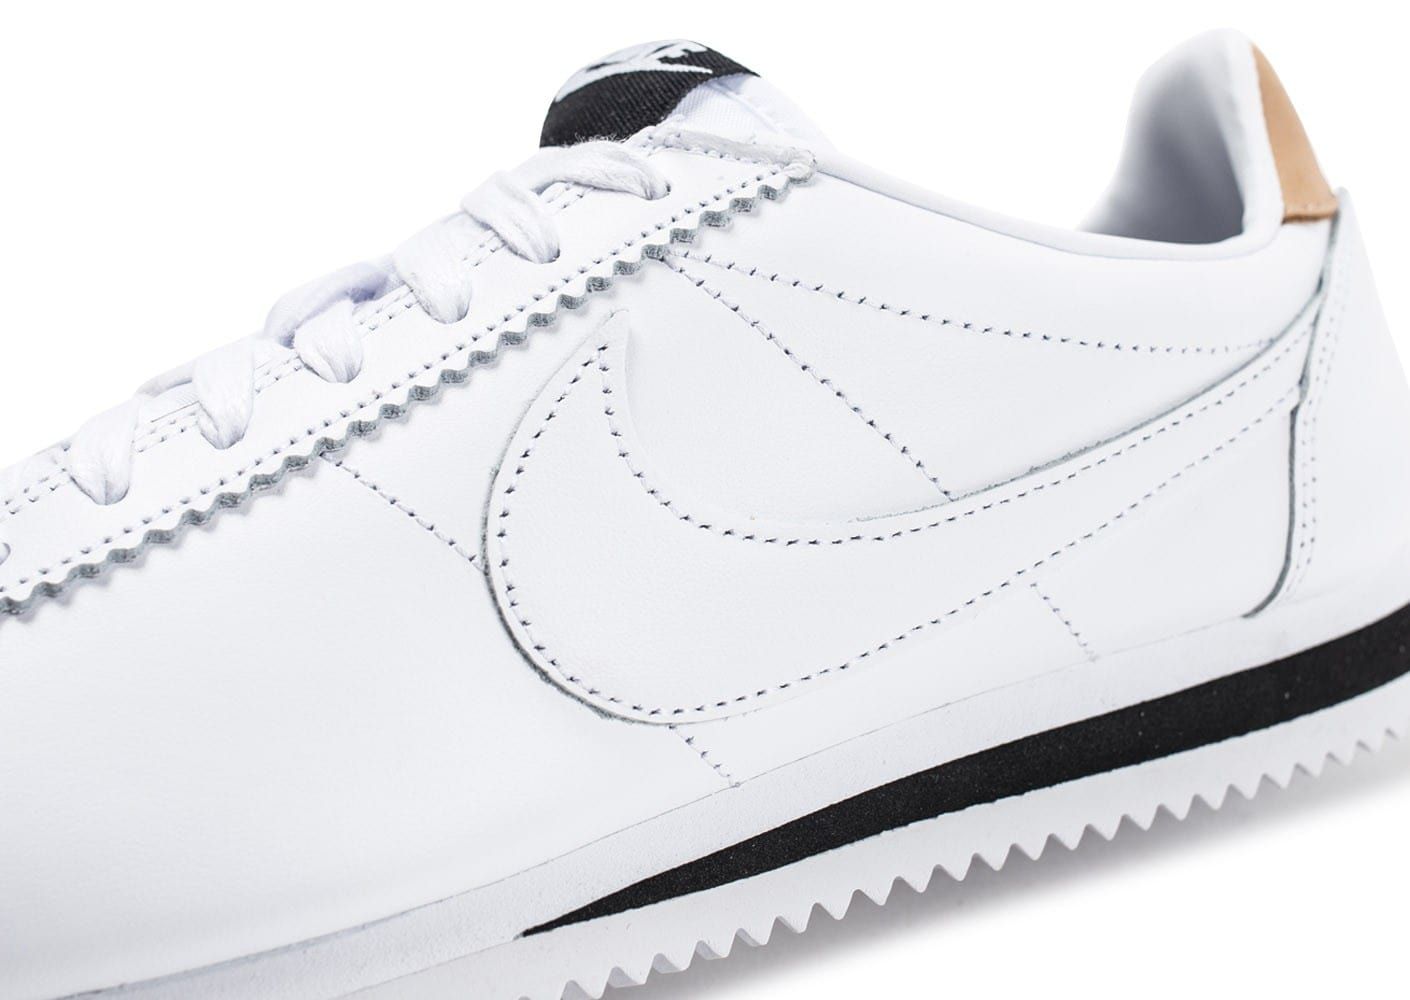 new concept b763b b7fcd ... Chaussures Nike Cortez Leather Se blanche vue dessus